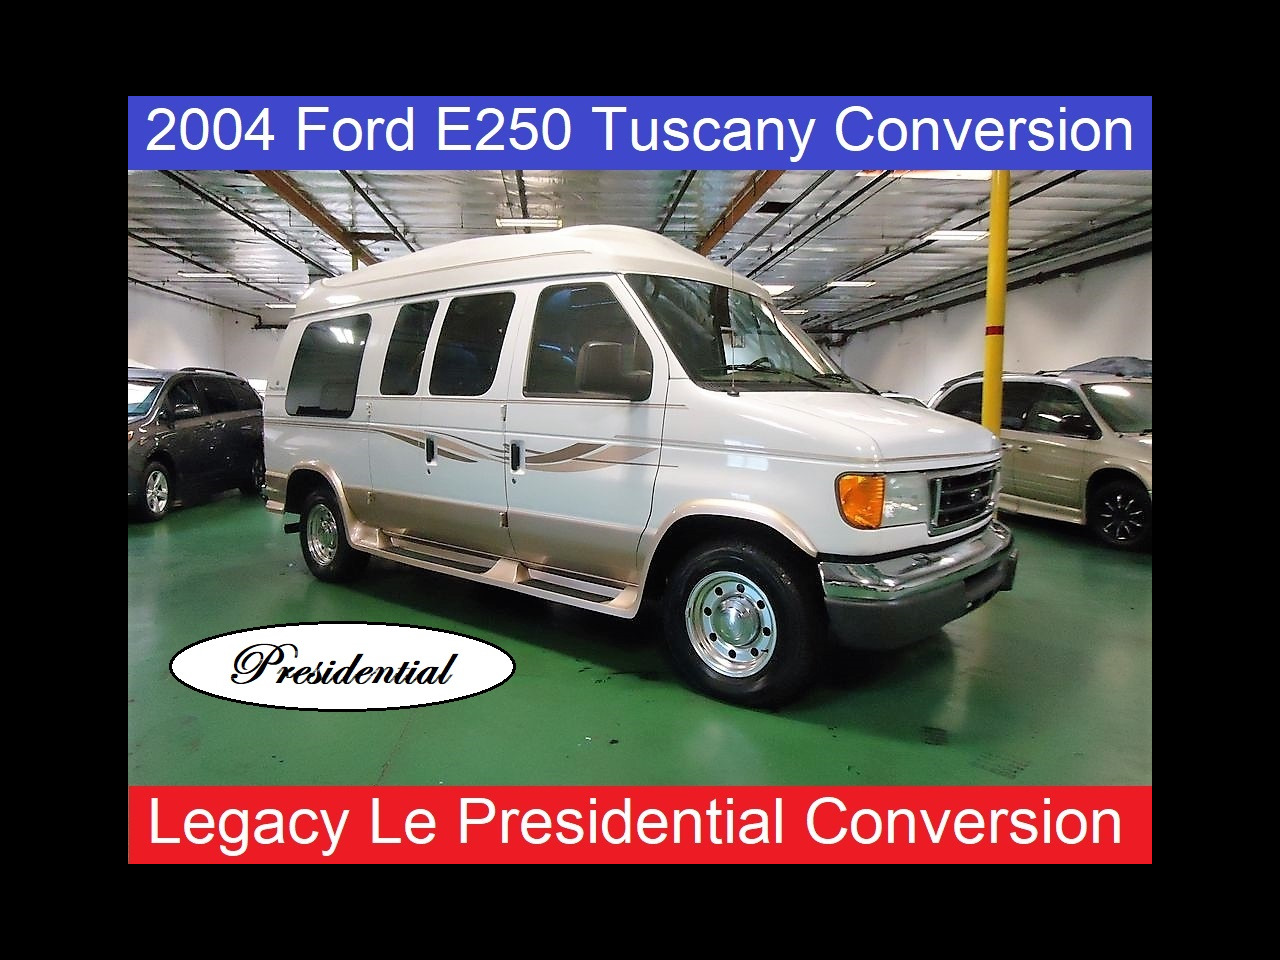 2004 Ford E250 Presidential Tuscany Conversion Van